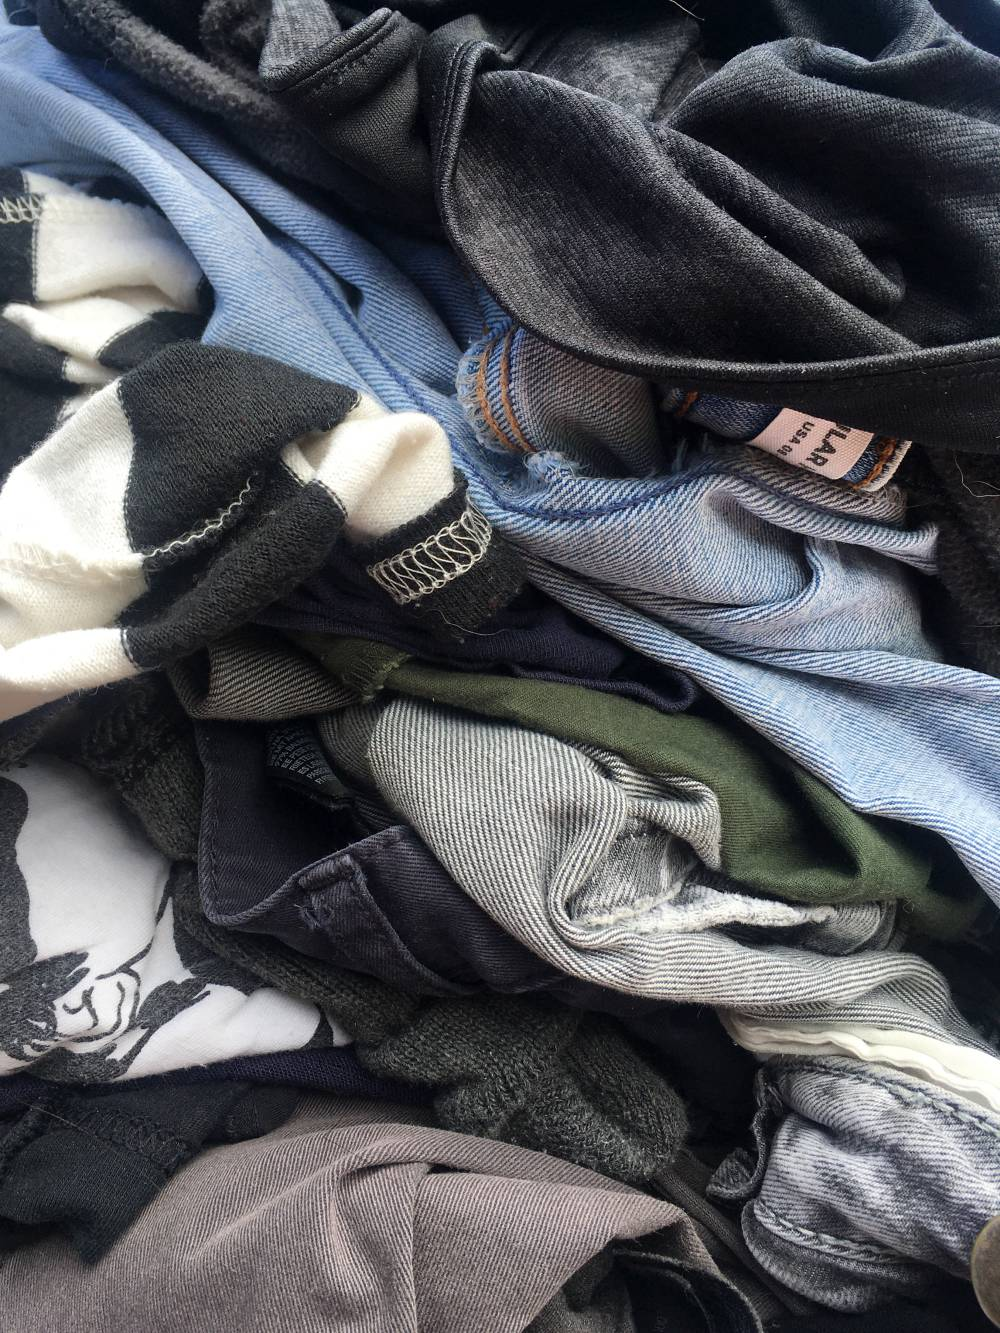 textile waste fast fashion facts